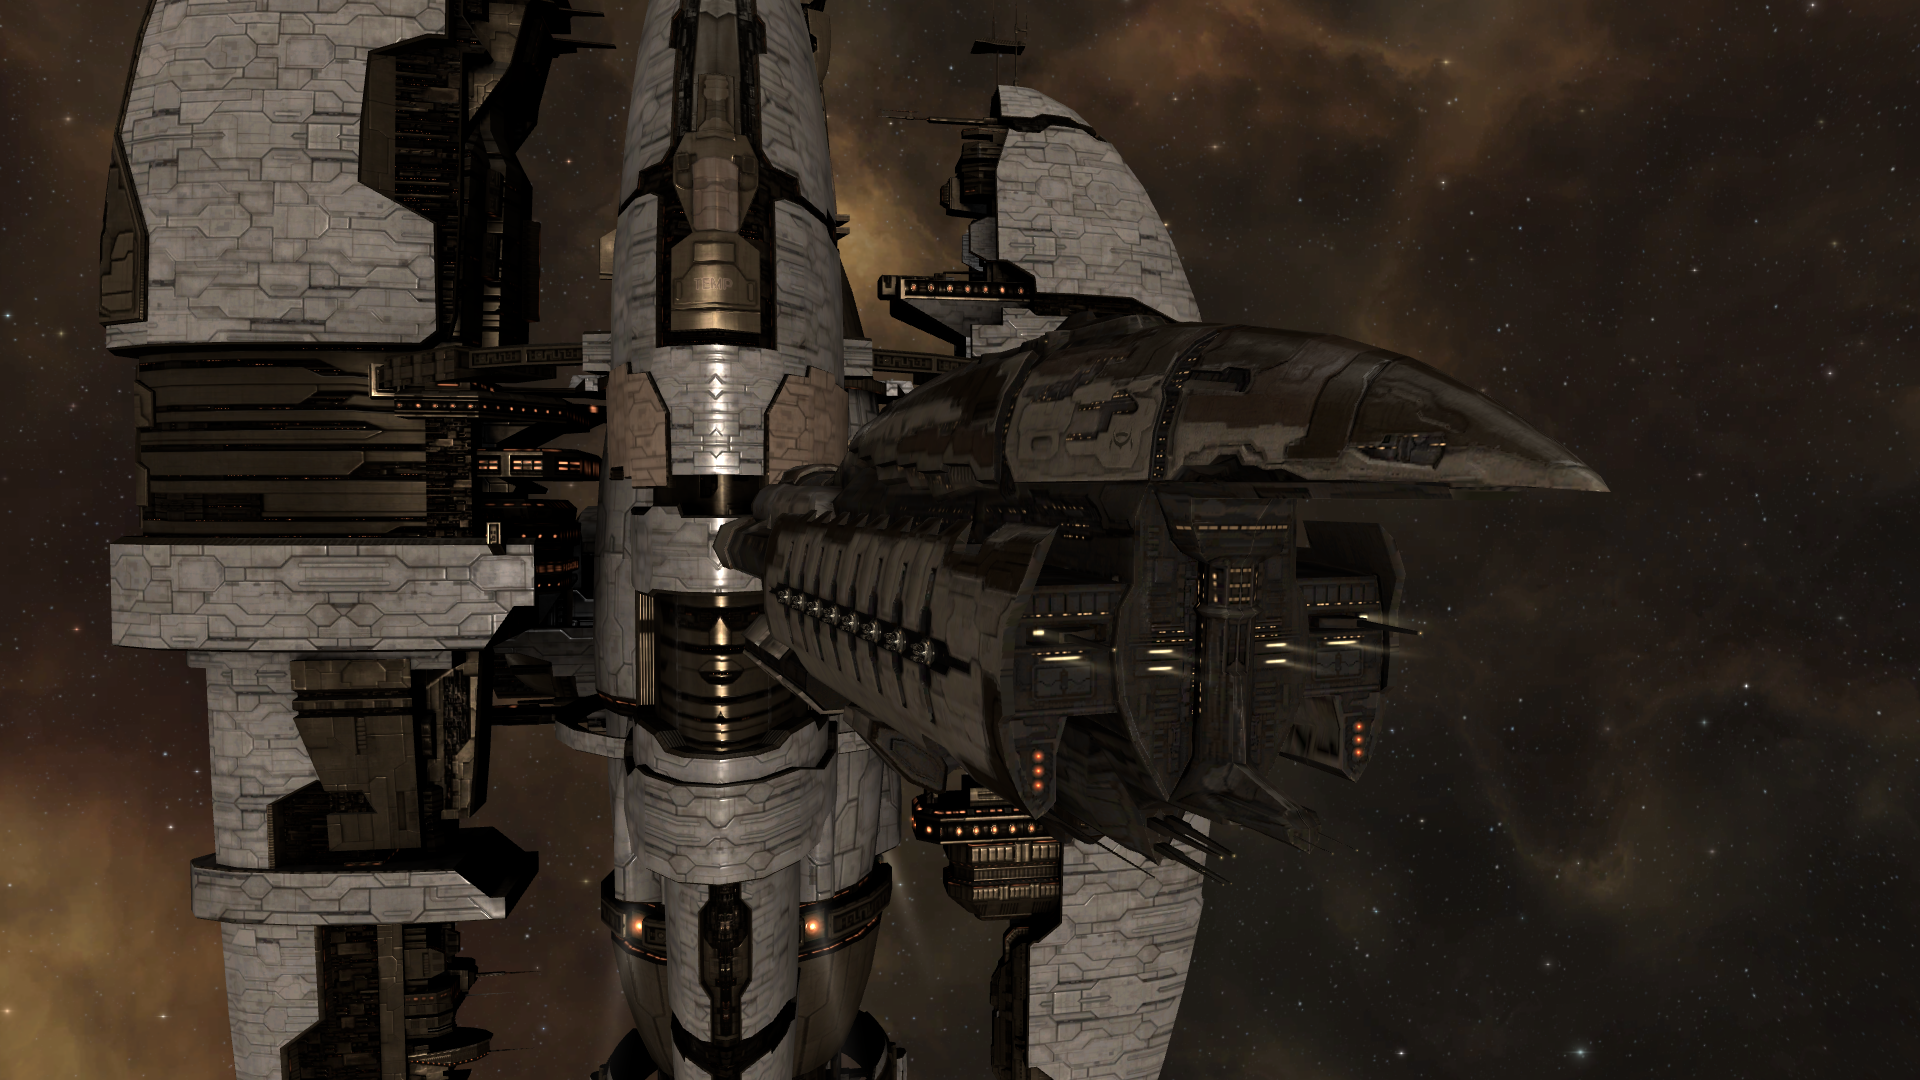 EVE Online - just a random capture